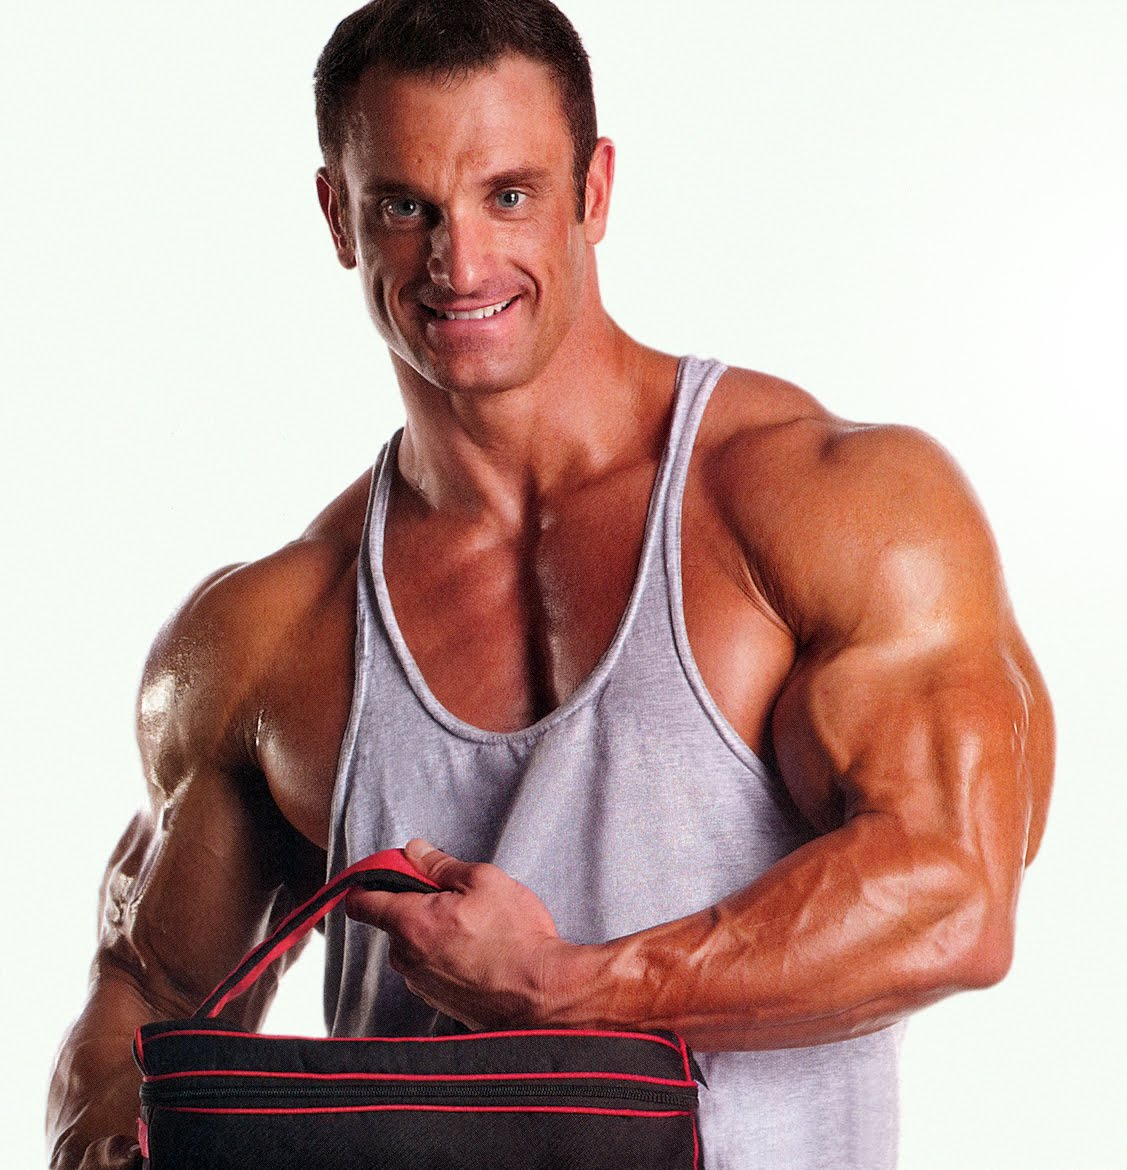 male fitness models over 50 male models picture